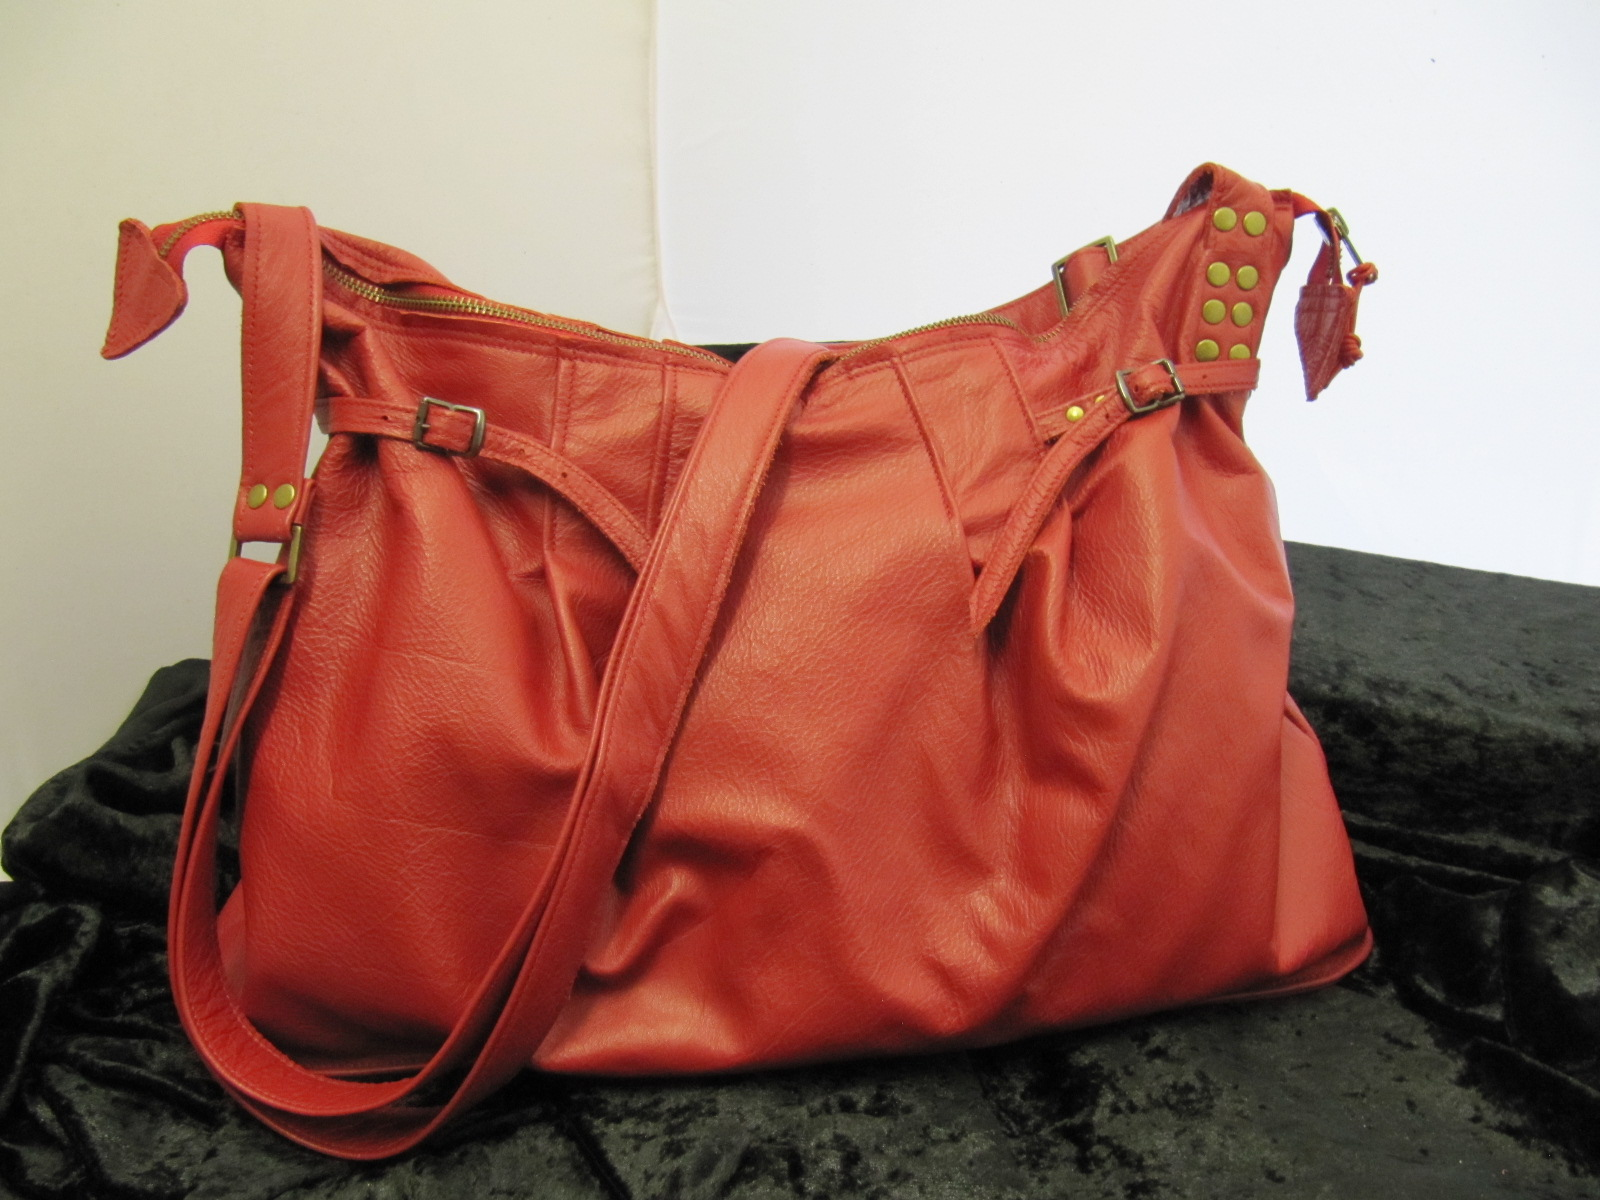 Soft red leather handbag